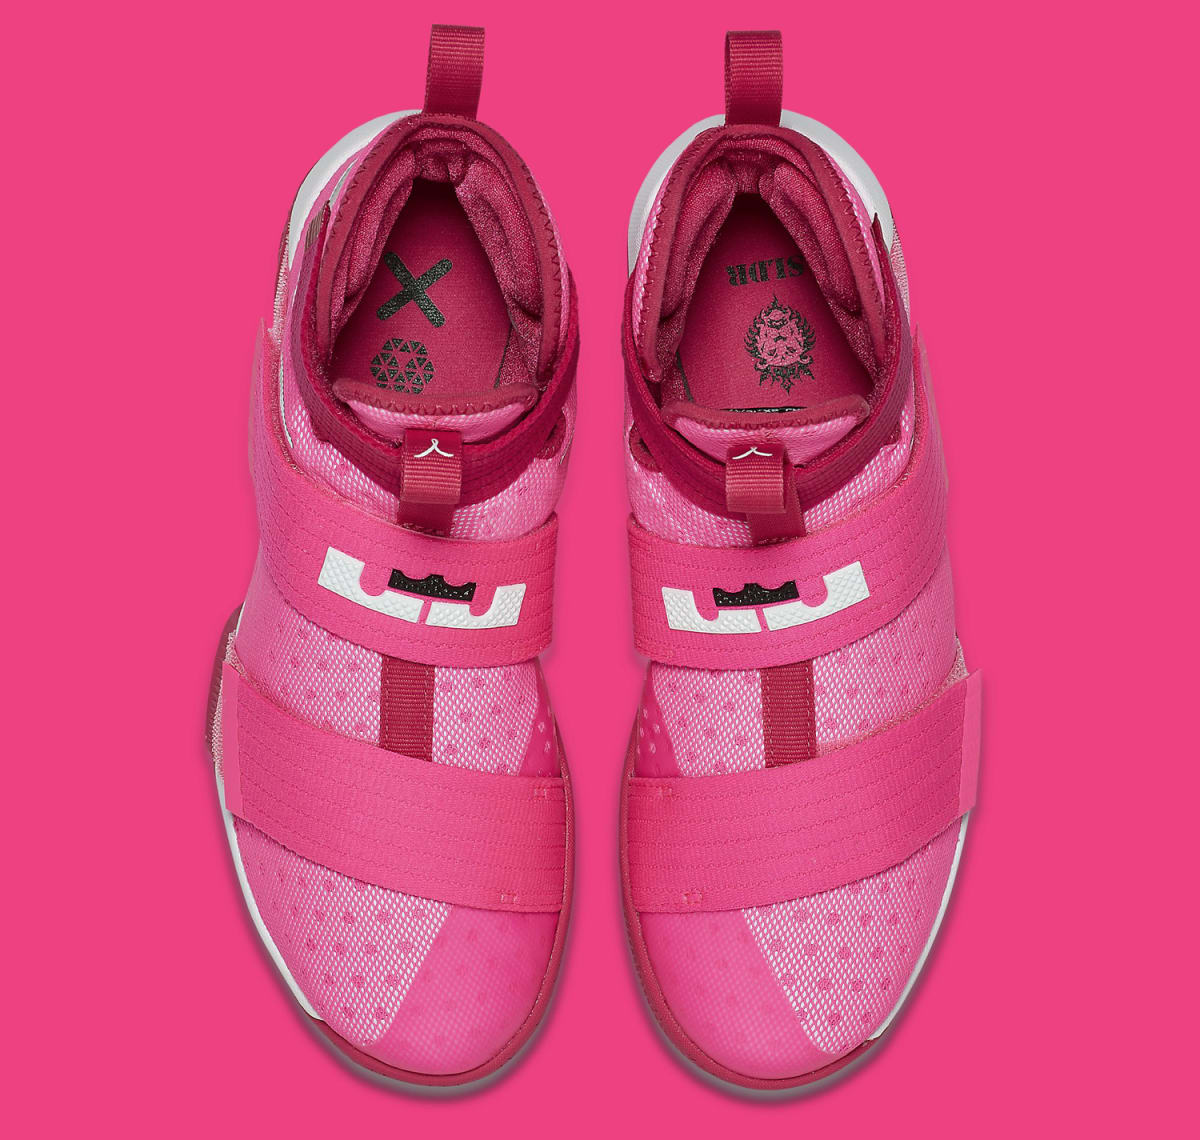 Nike LeBron Soldier 10 Think Pink  c9248b7e2471